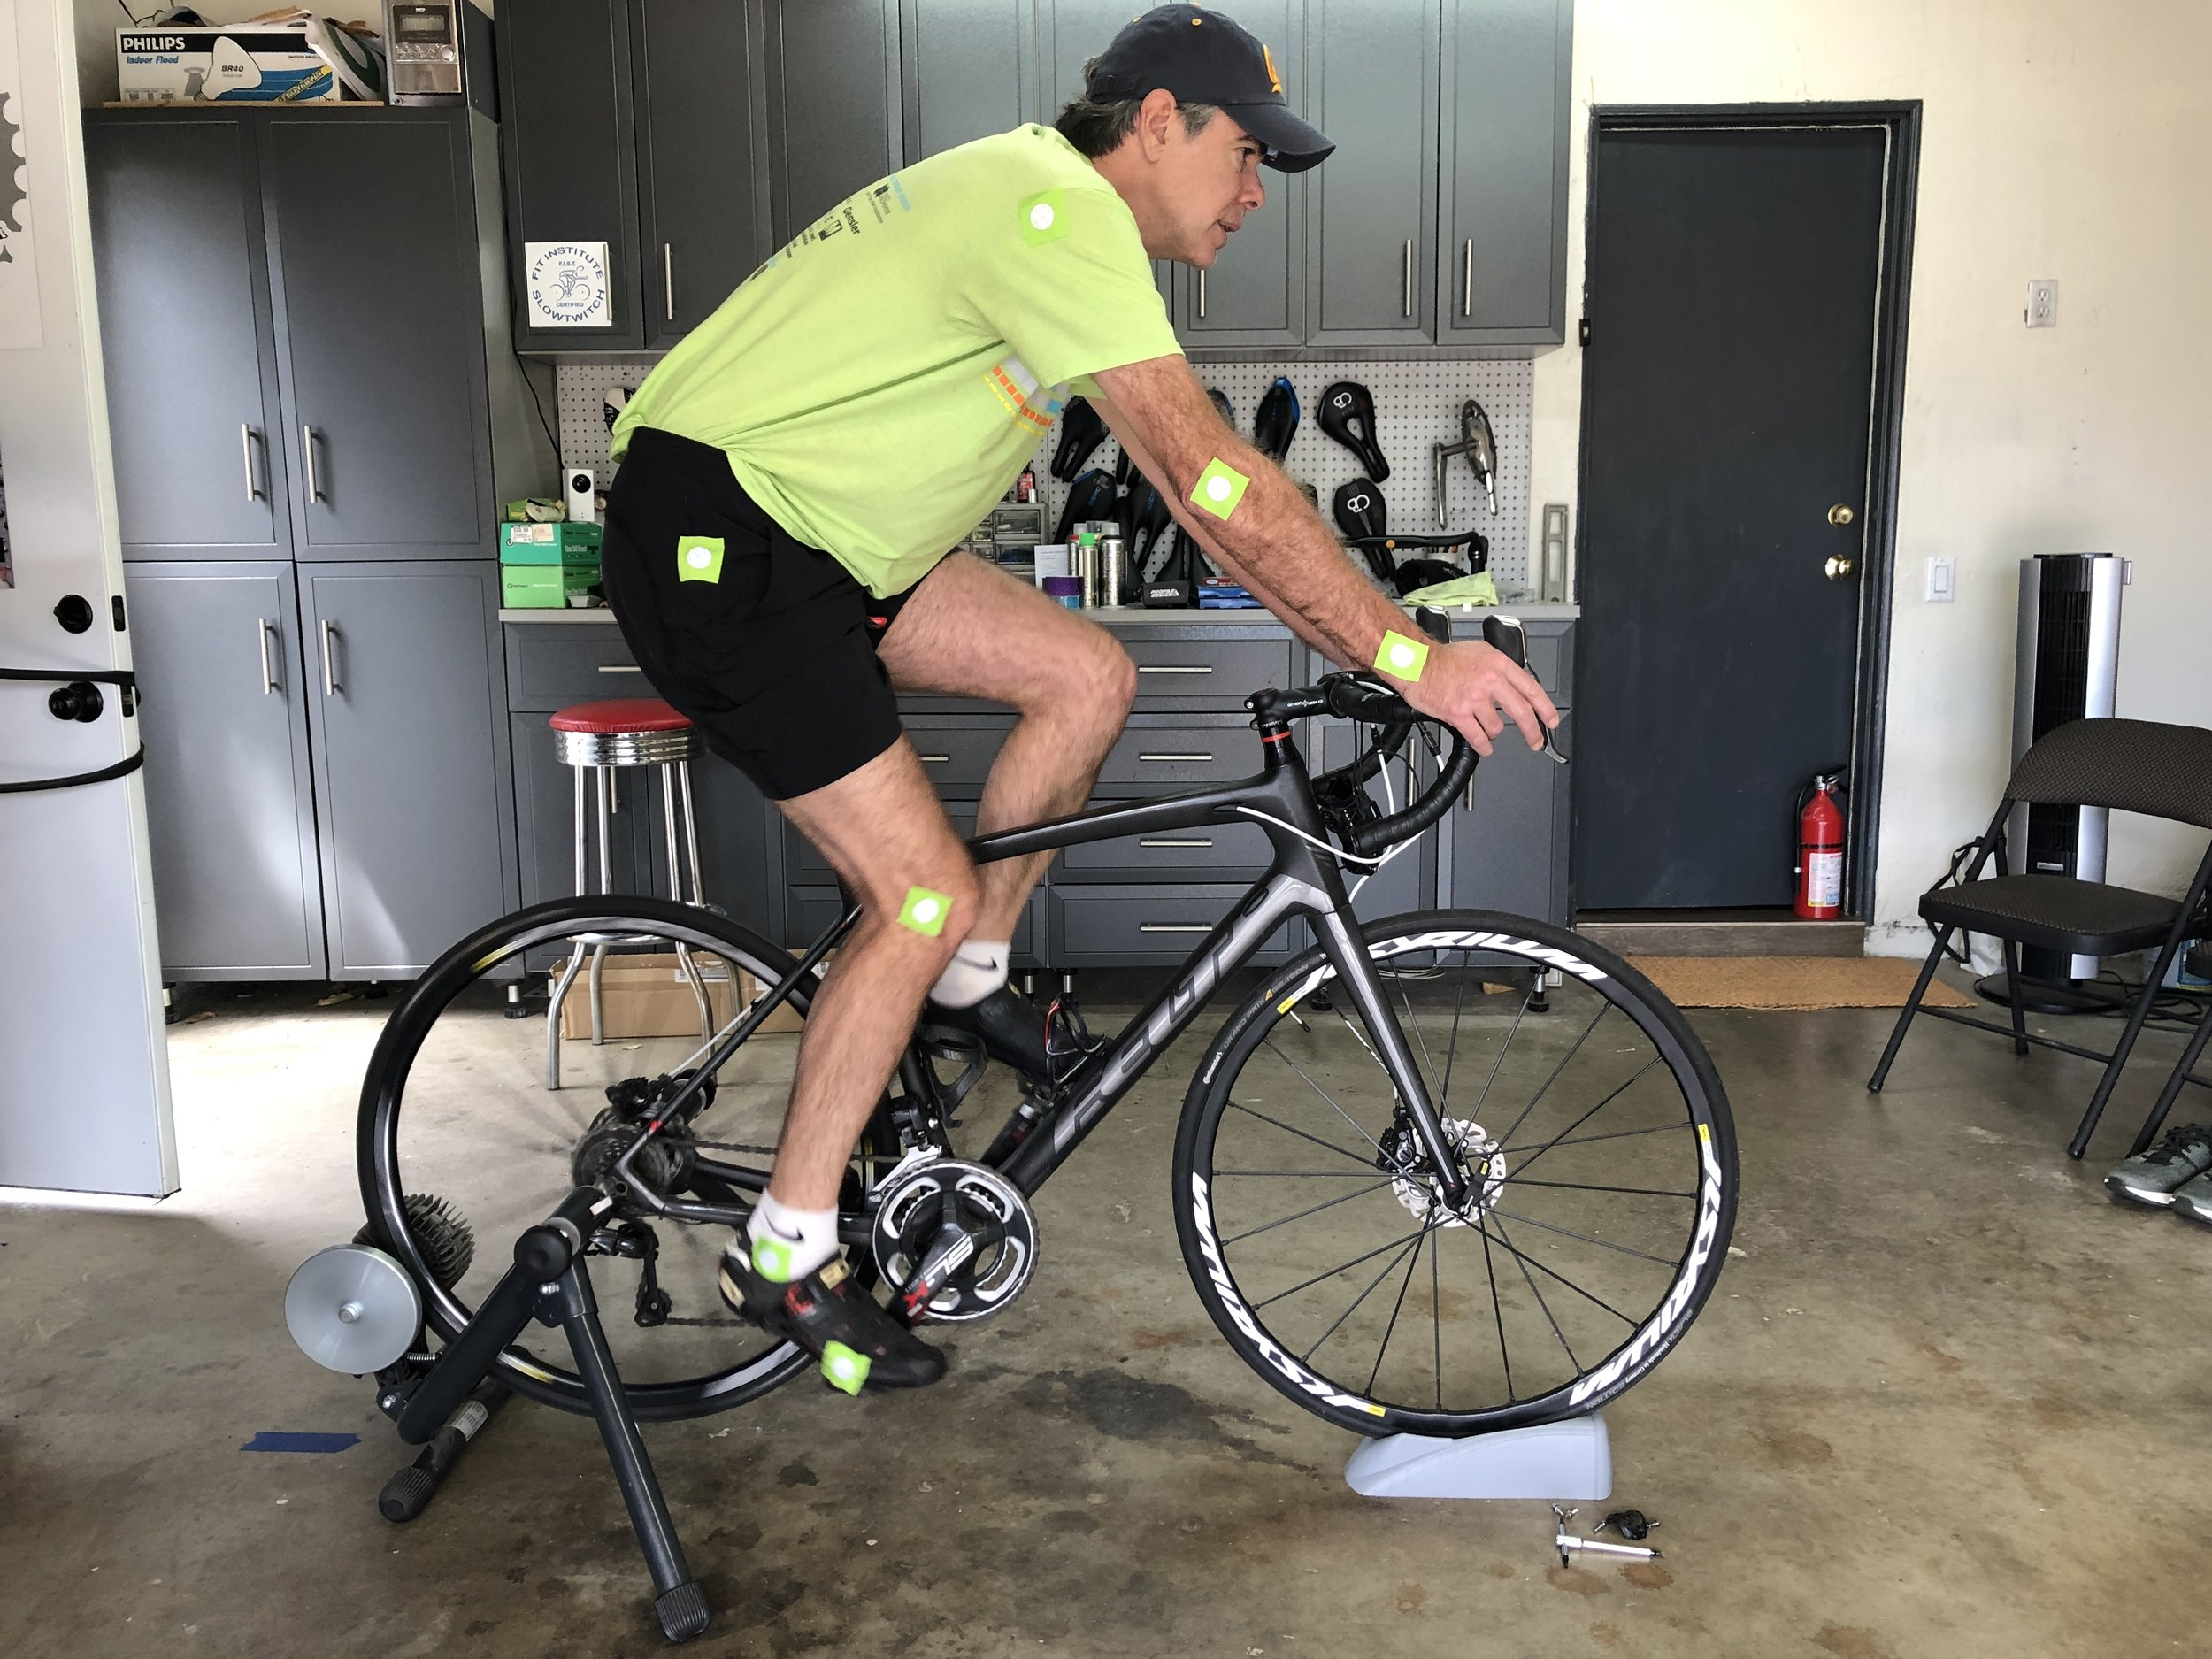 Your Bike Fit will evolve over time…. - Based on your current fitness level and any injuries or limitations you may have at the time of your fitting. It is common to revisit and tweak the fit as time goes on.